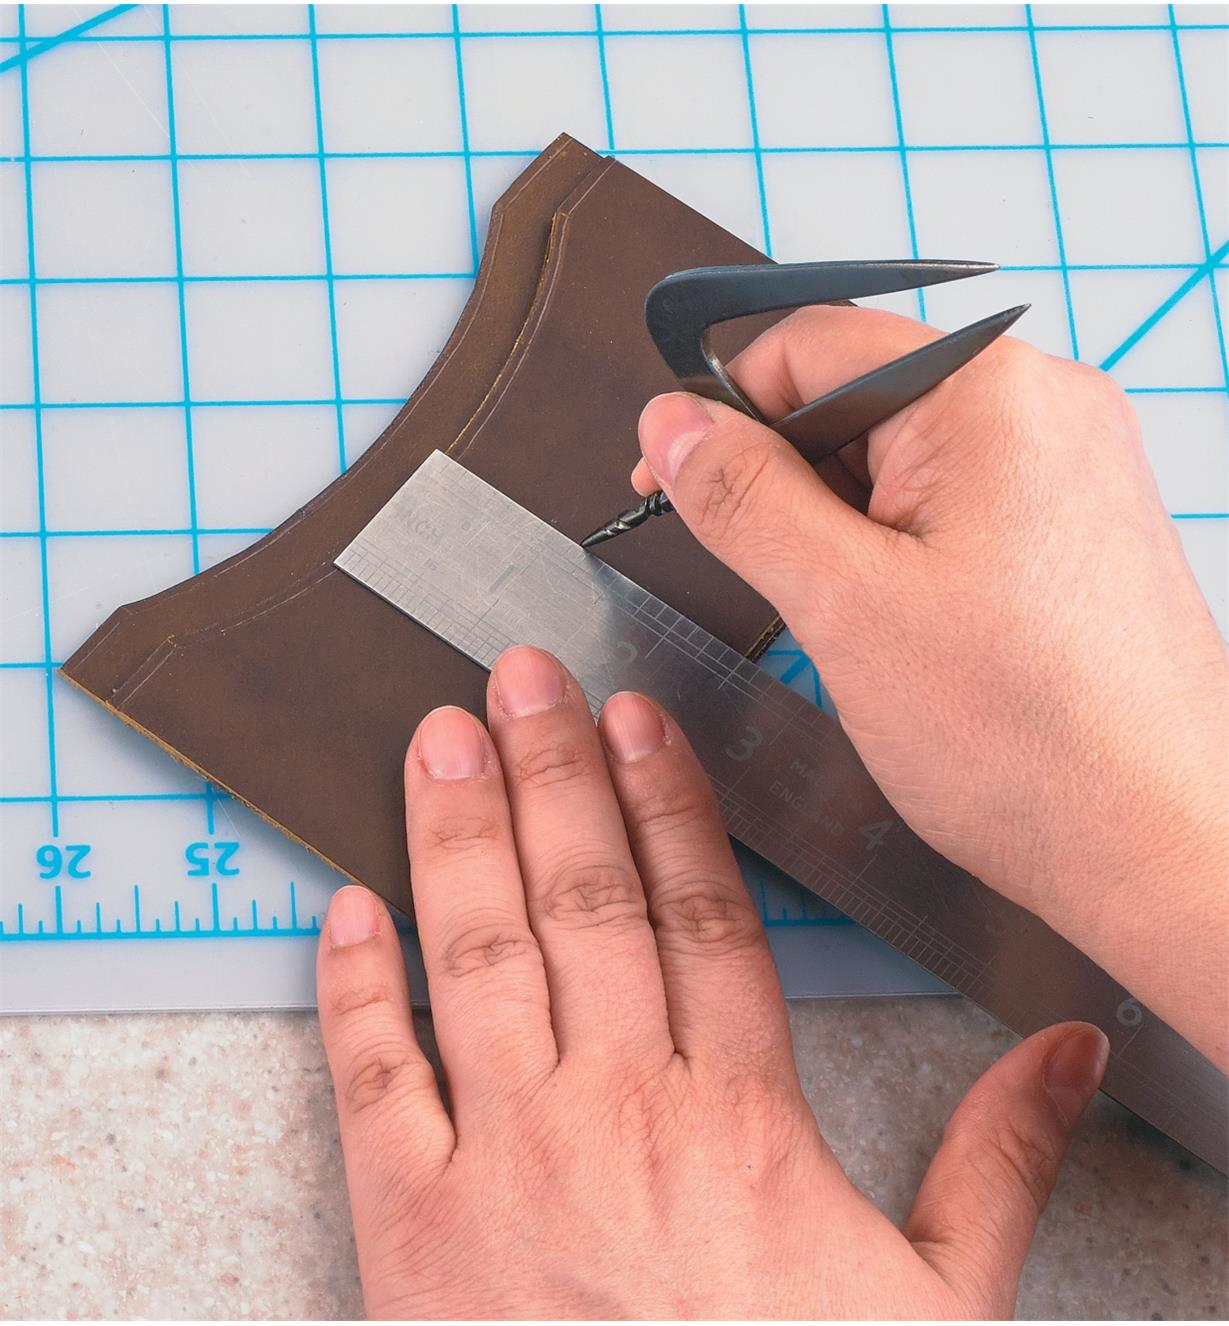 Using the awl point to mark a line on a leather wallet